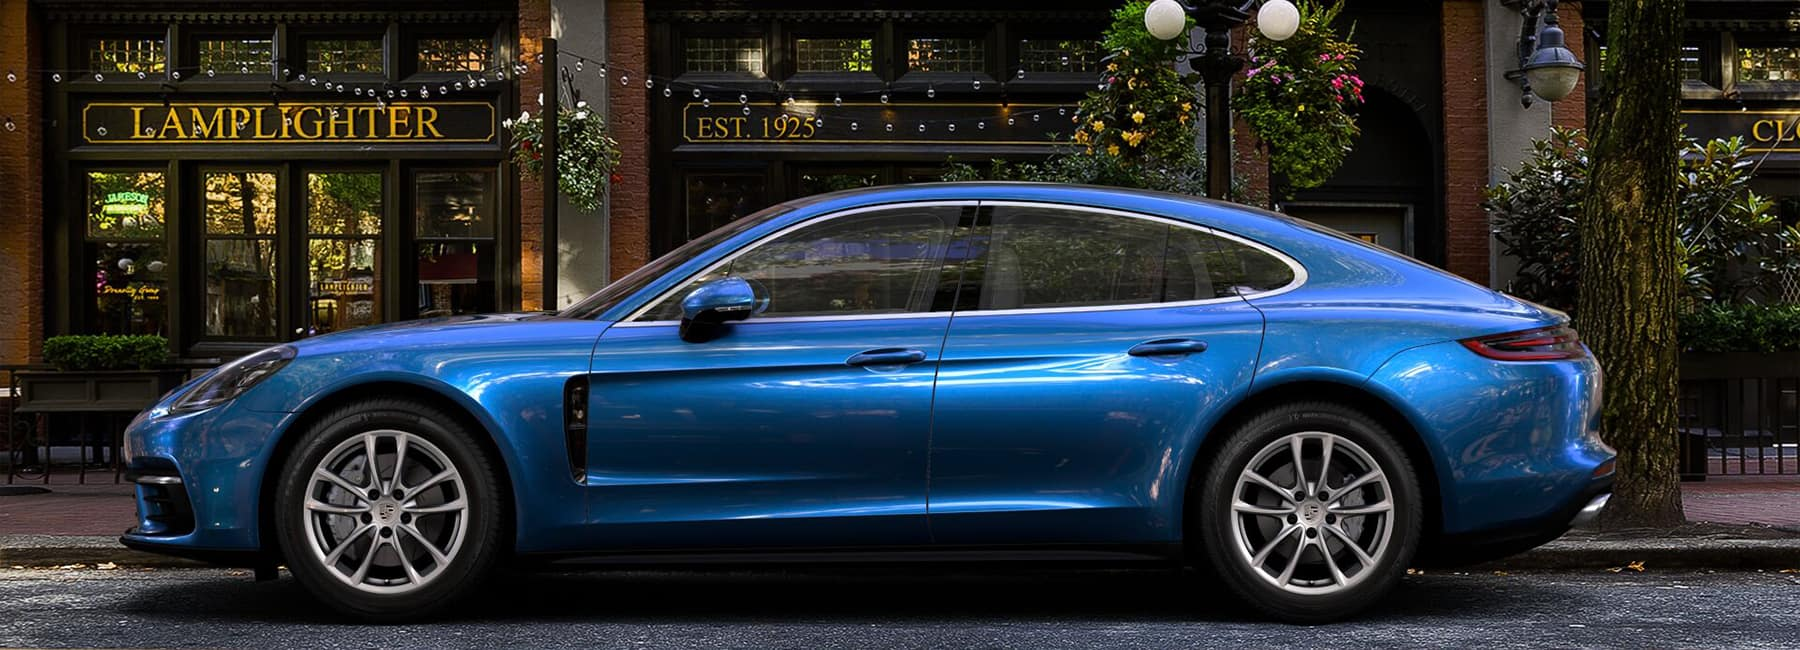 2020 Porsche Panamera Vs Bmw 7 Series Vs Mercedes Benz S Class